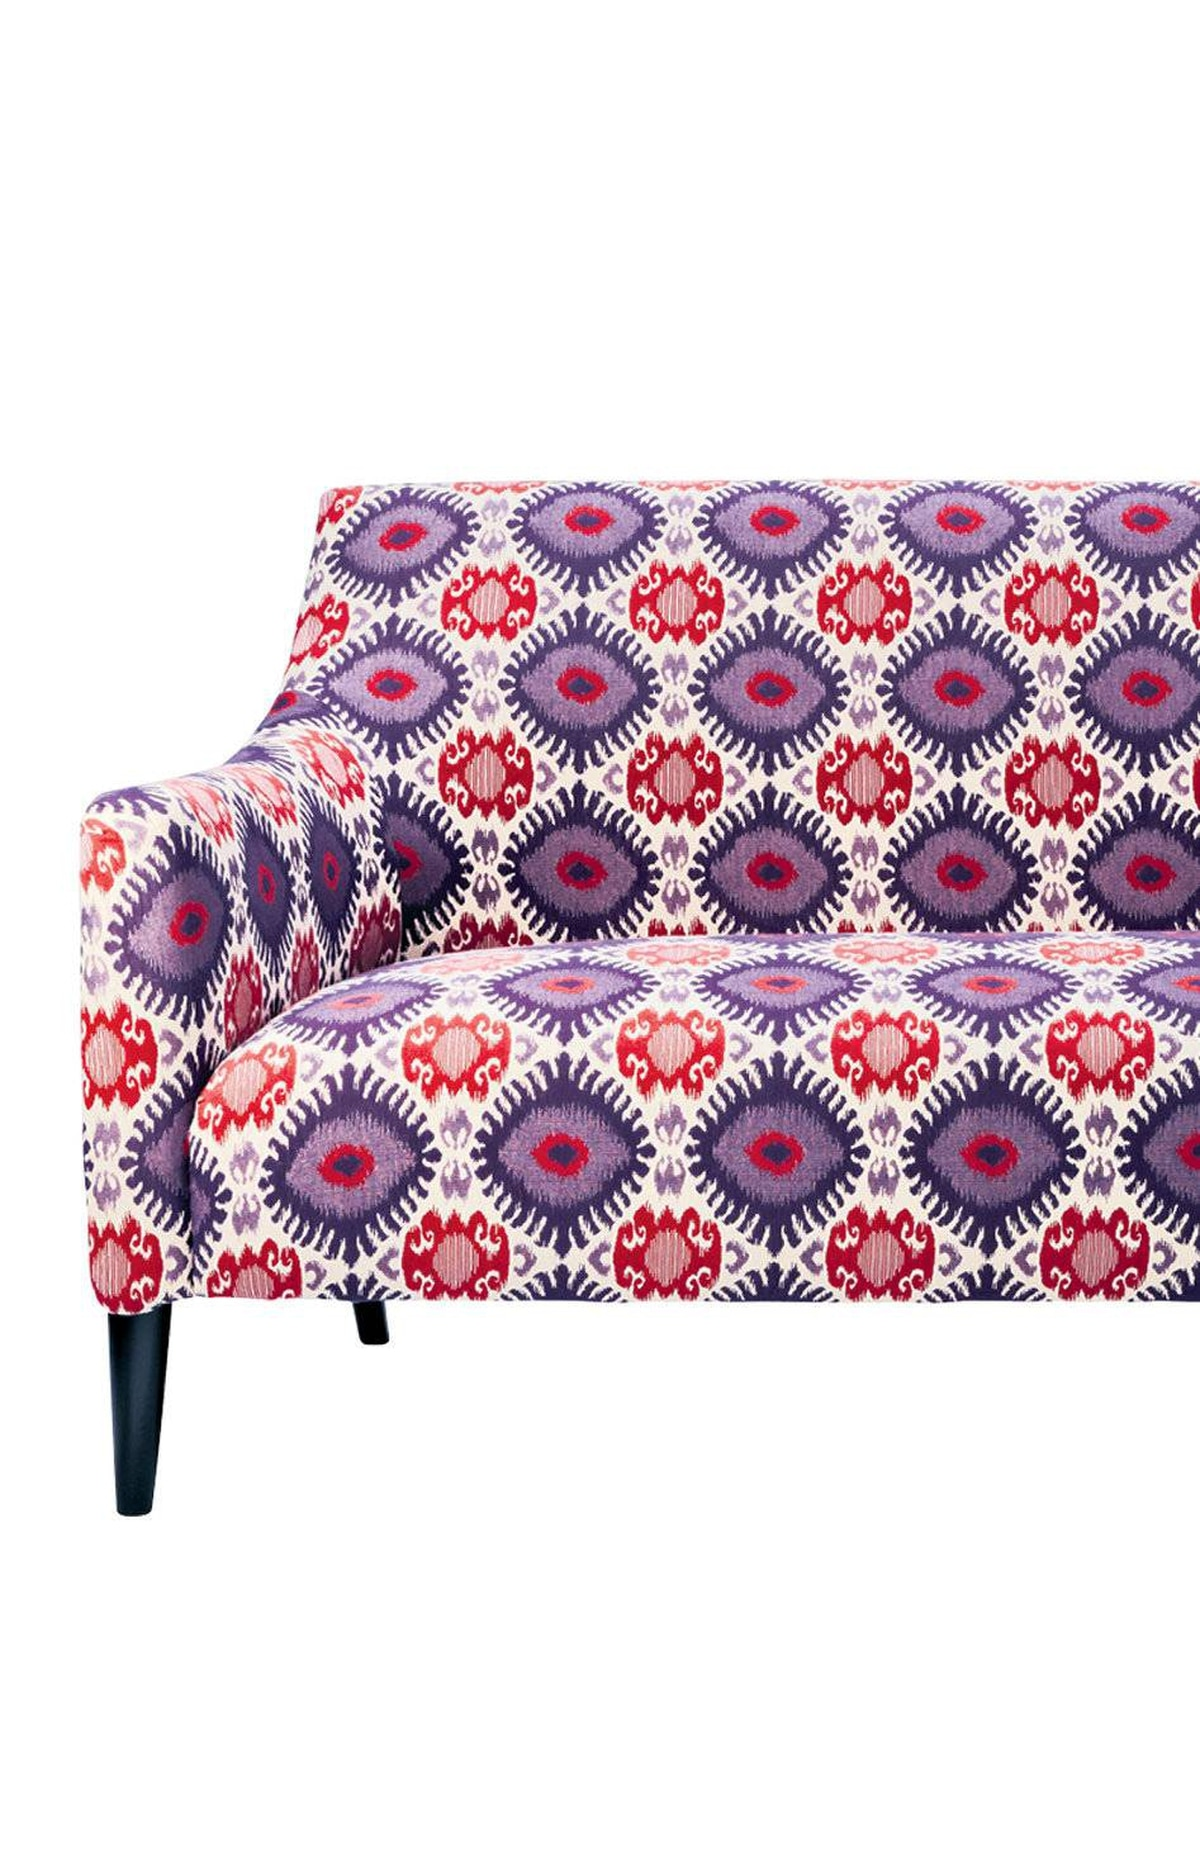 A vividly patterned settee makes a striking focal point. Settee, $500 at HomeSense (www.homesense.ca).